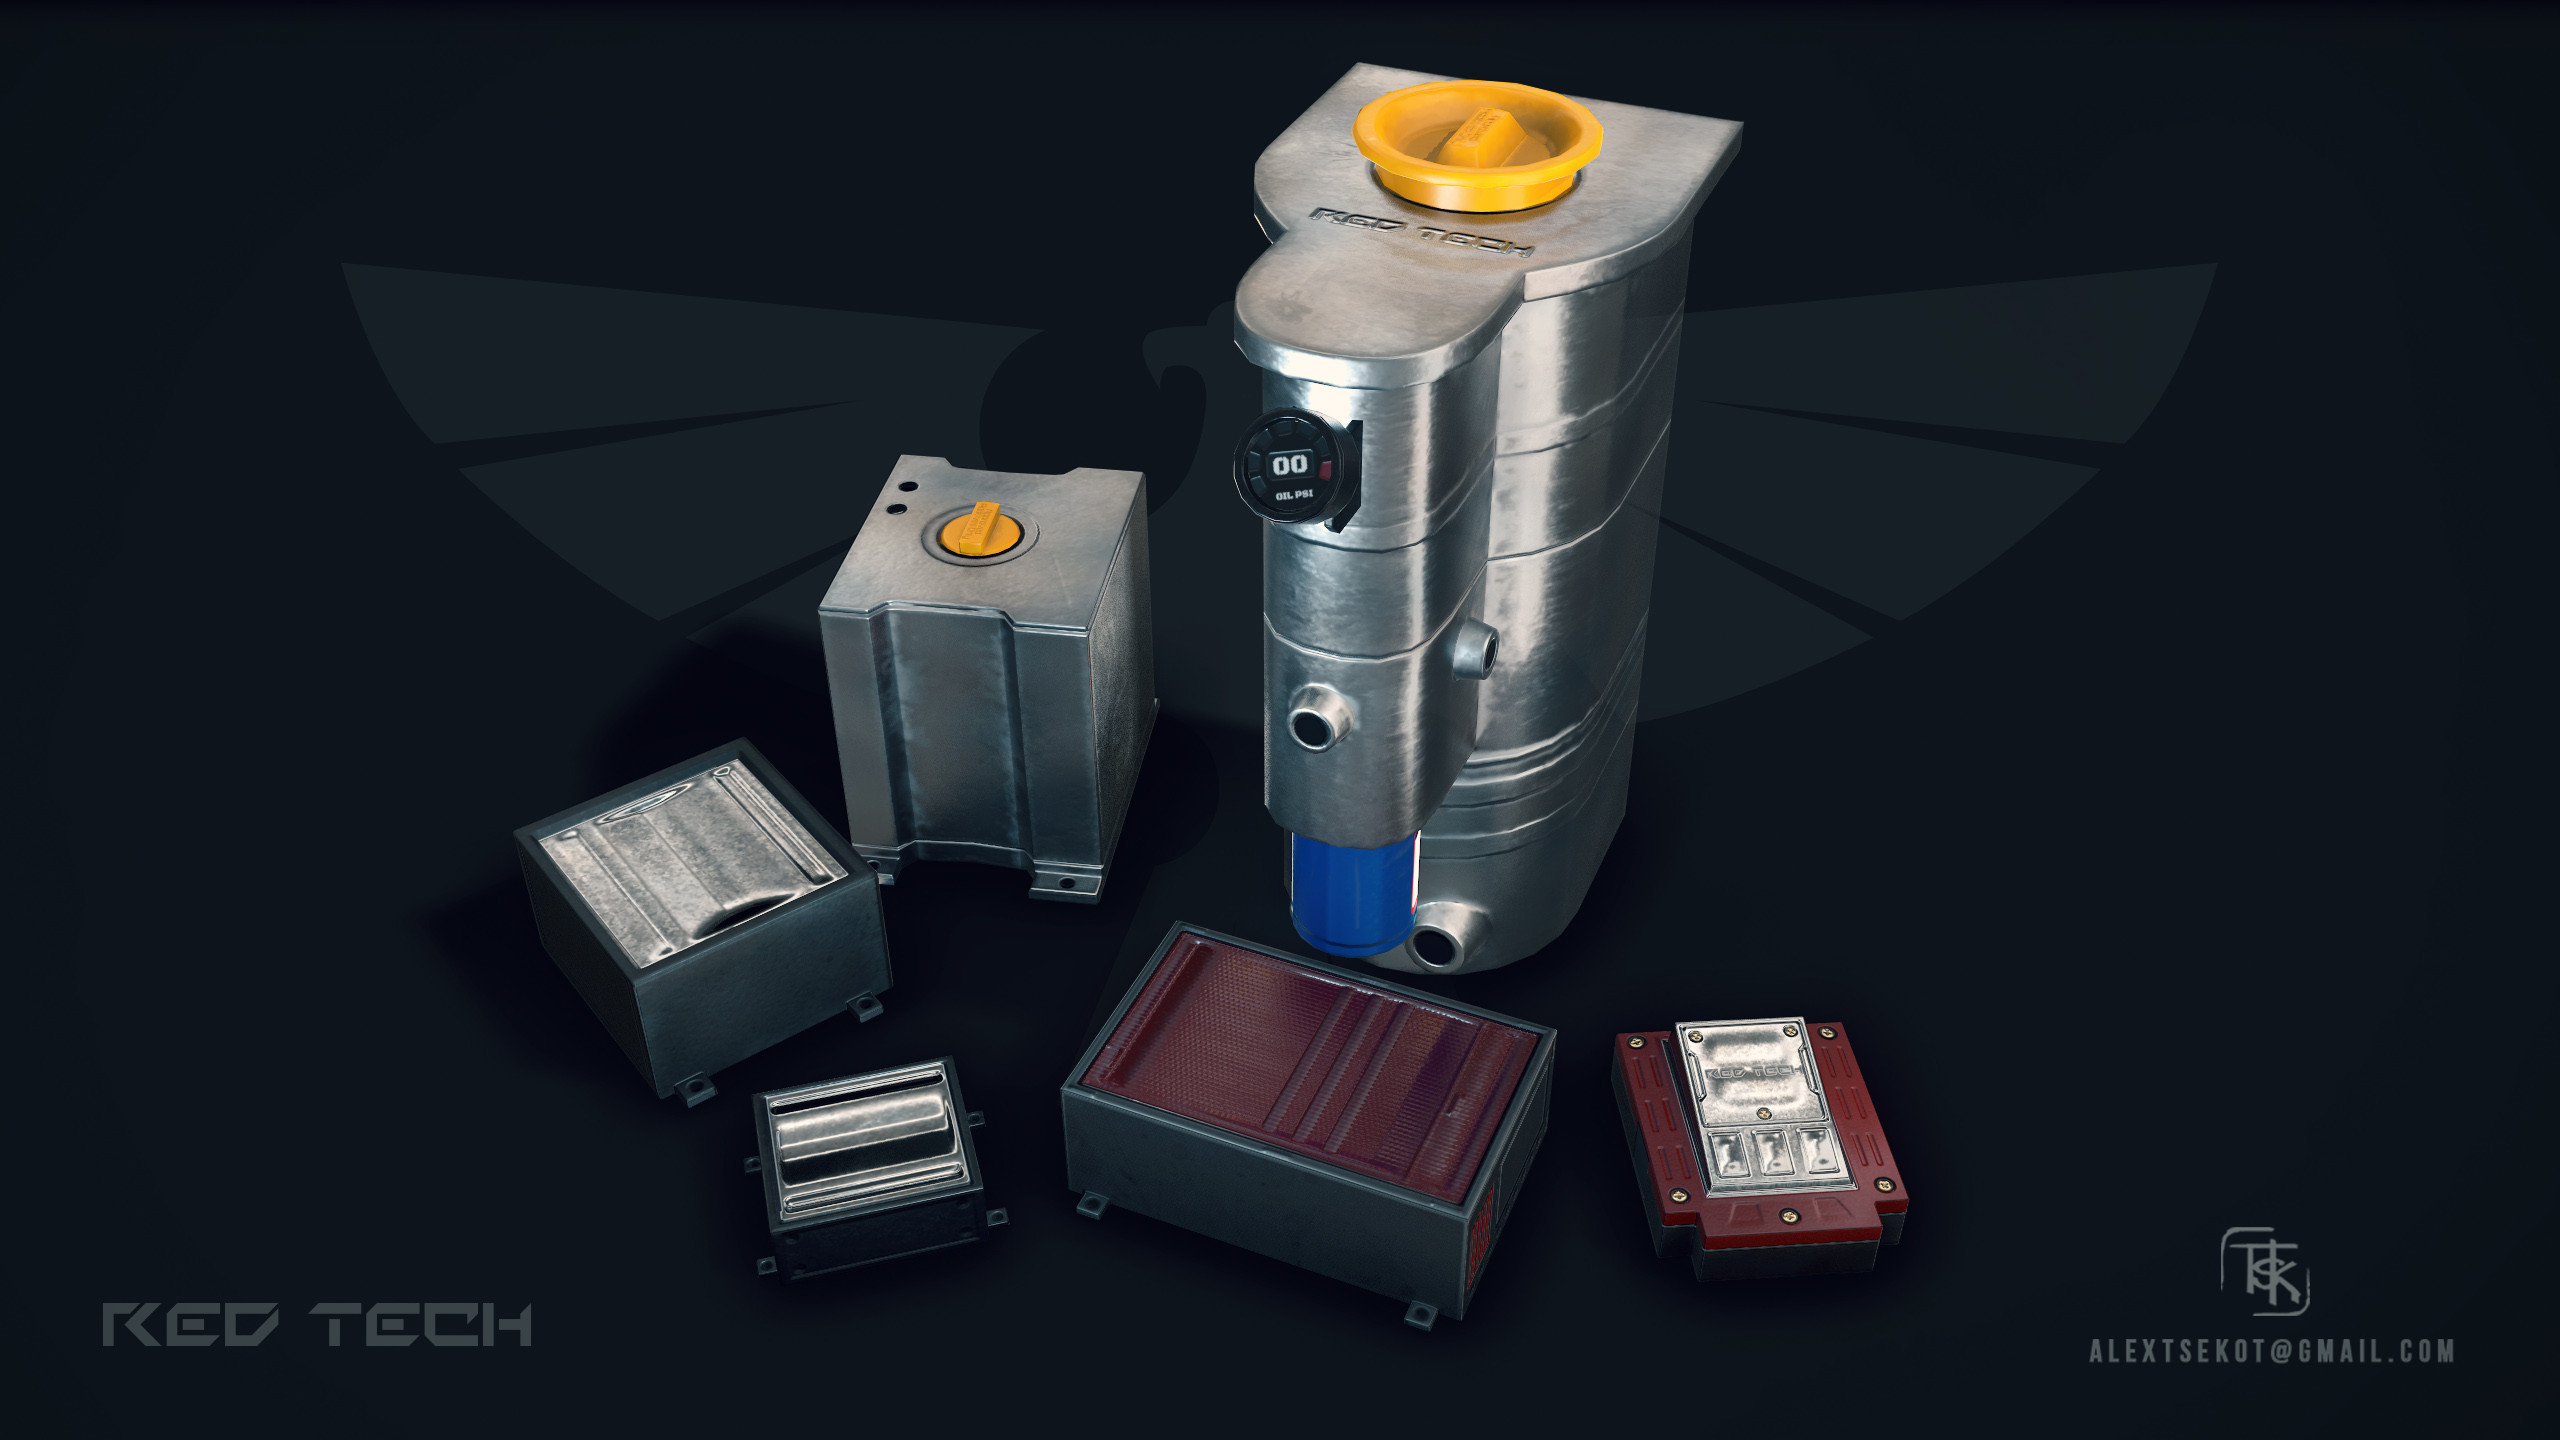 Various fluid containers and electronics accessories